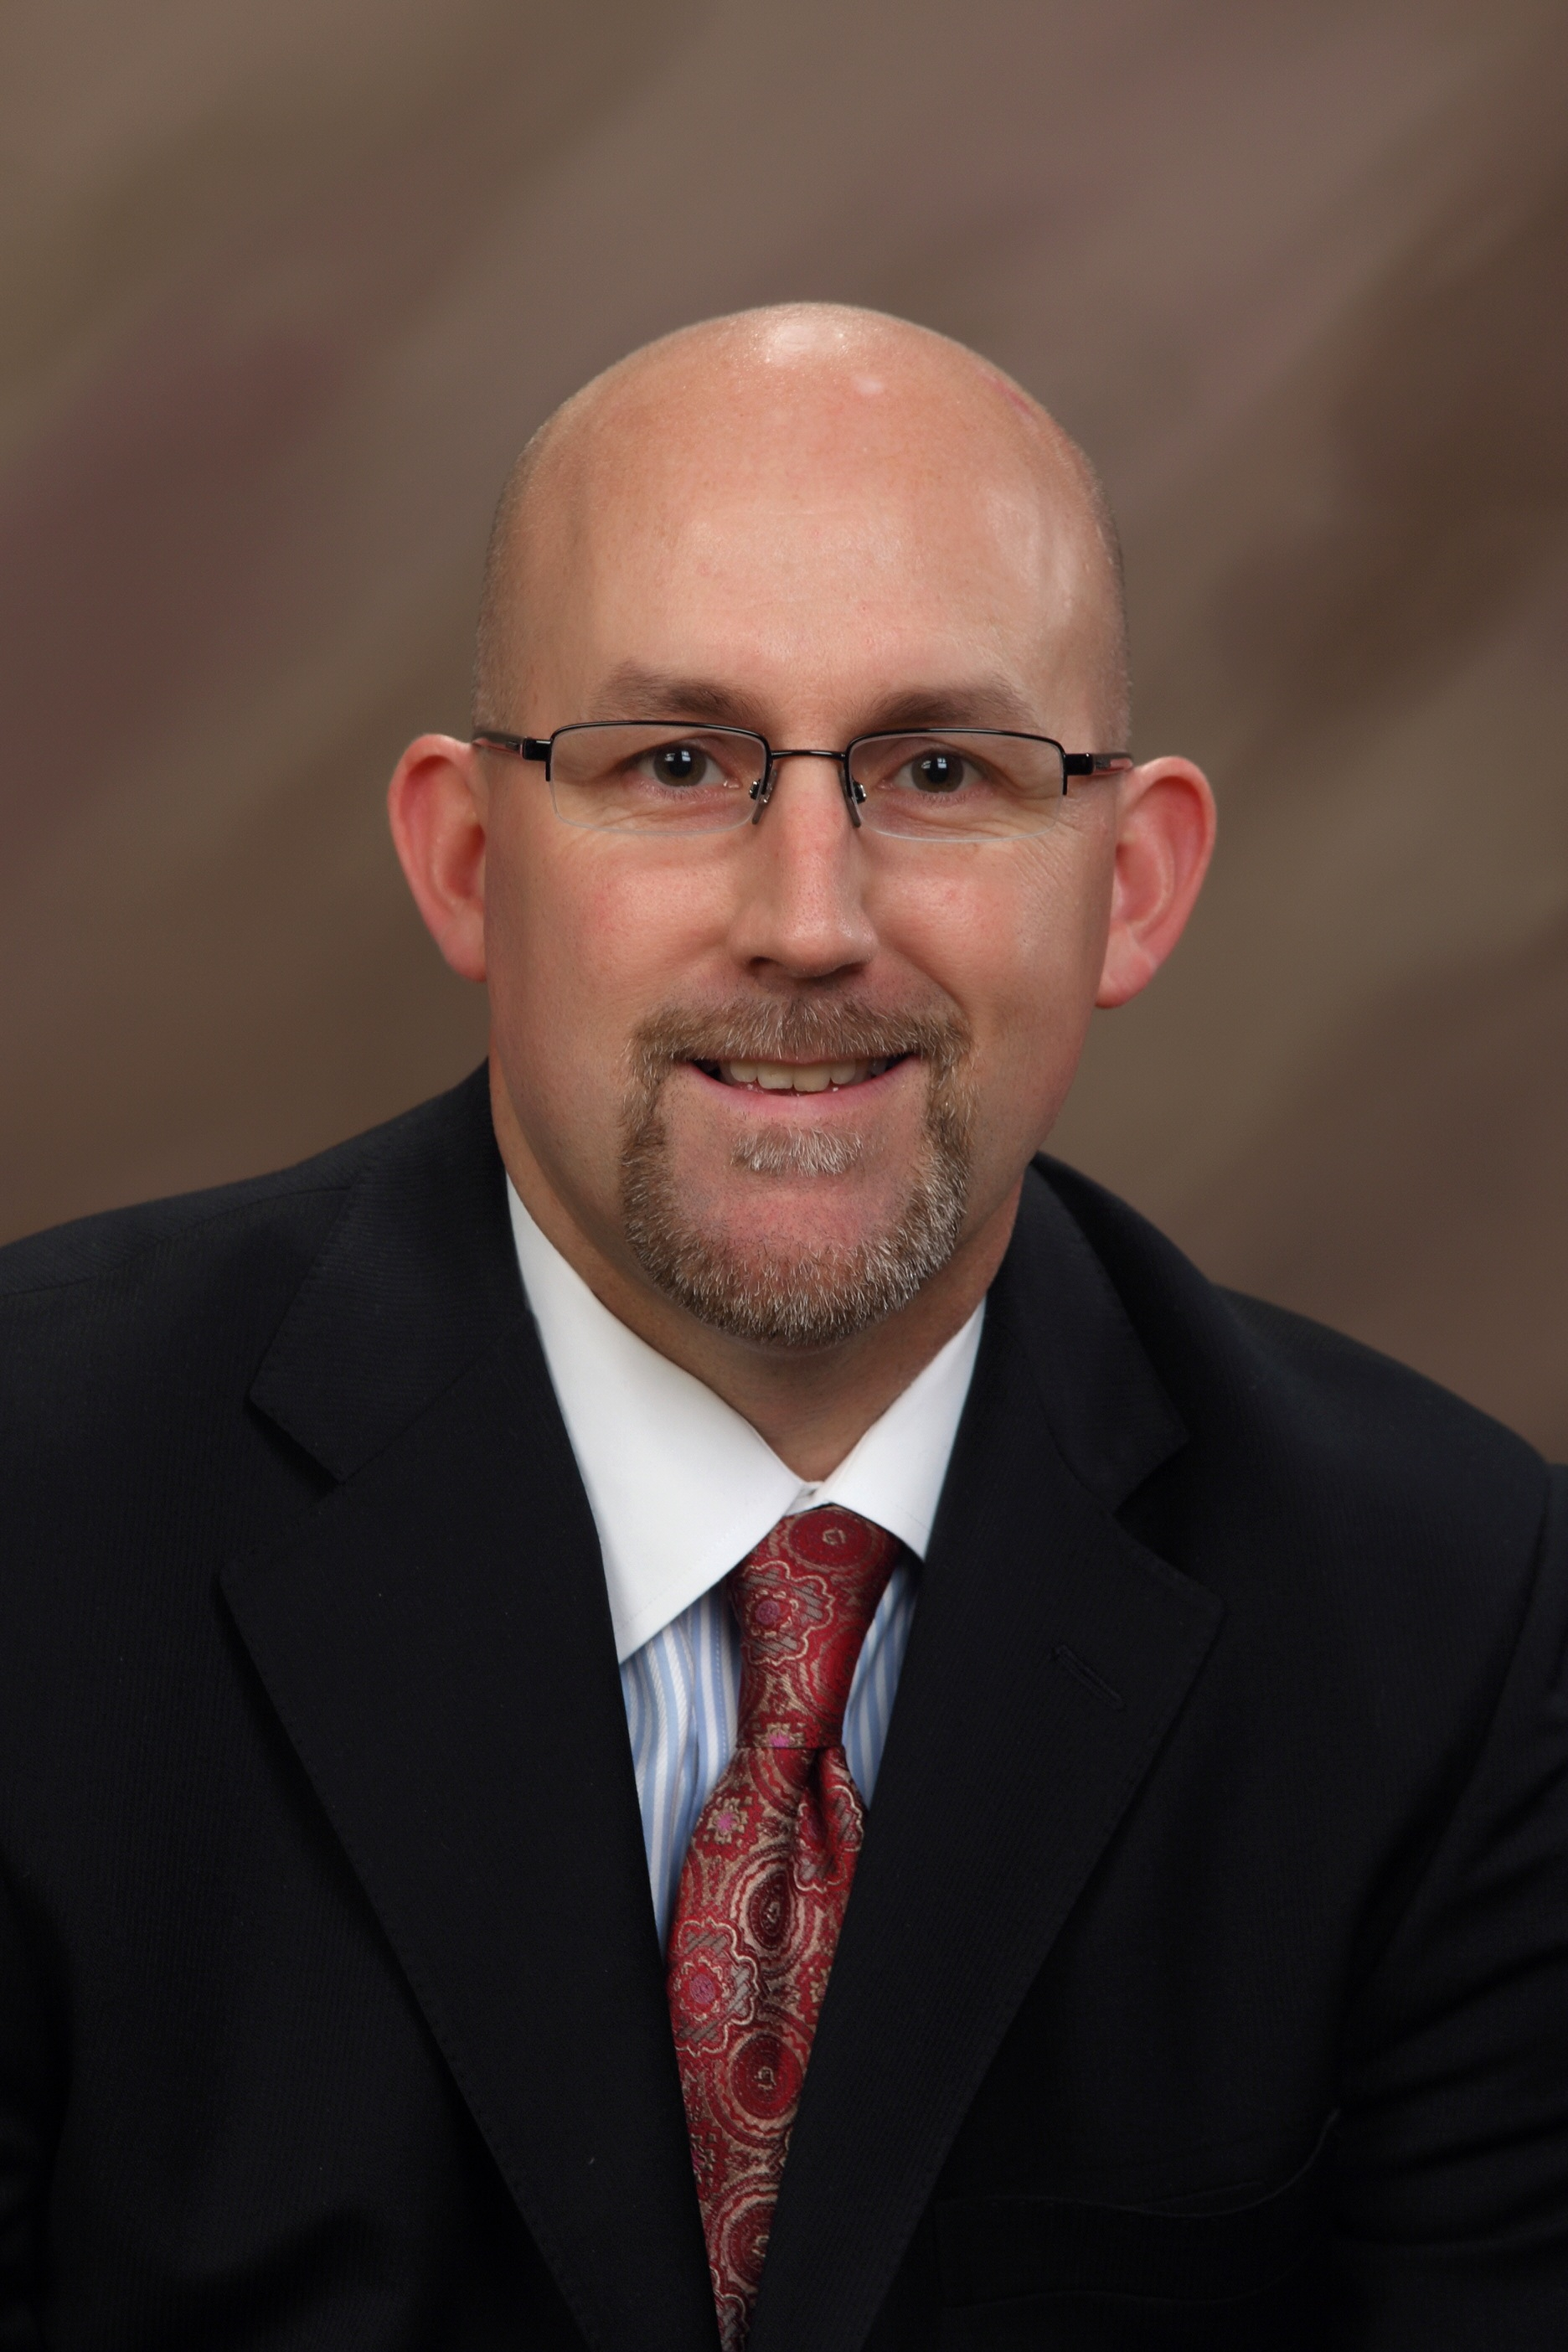 Thompson Assumes Role As Chief Lending Officer At